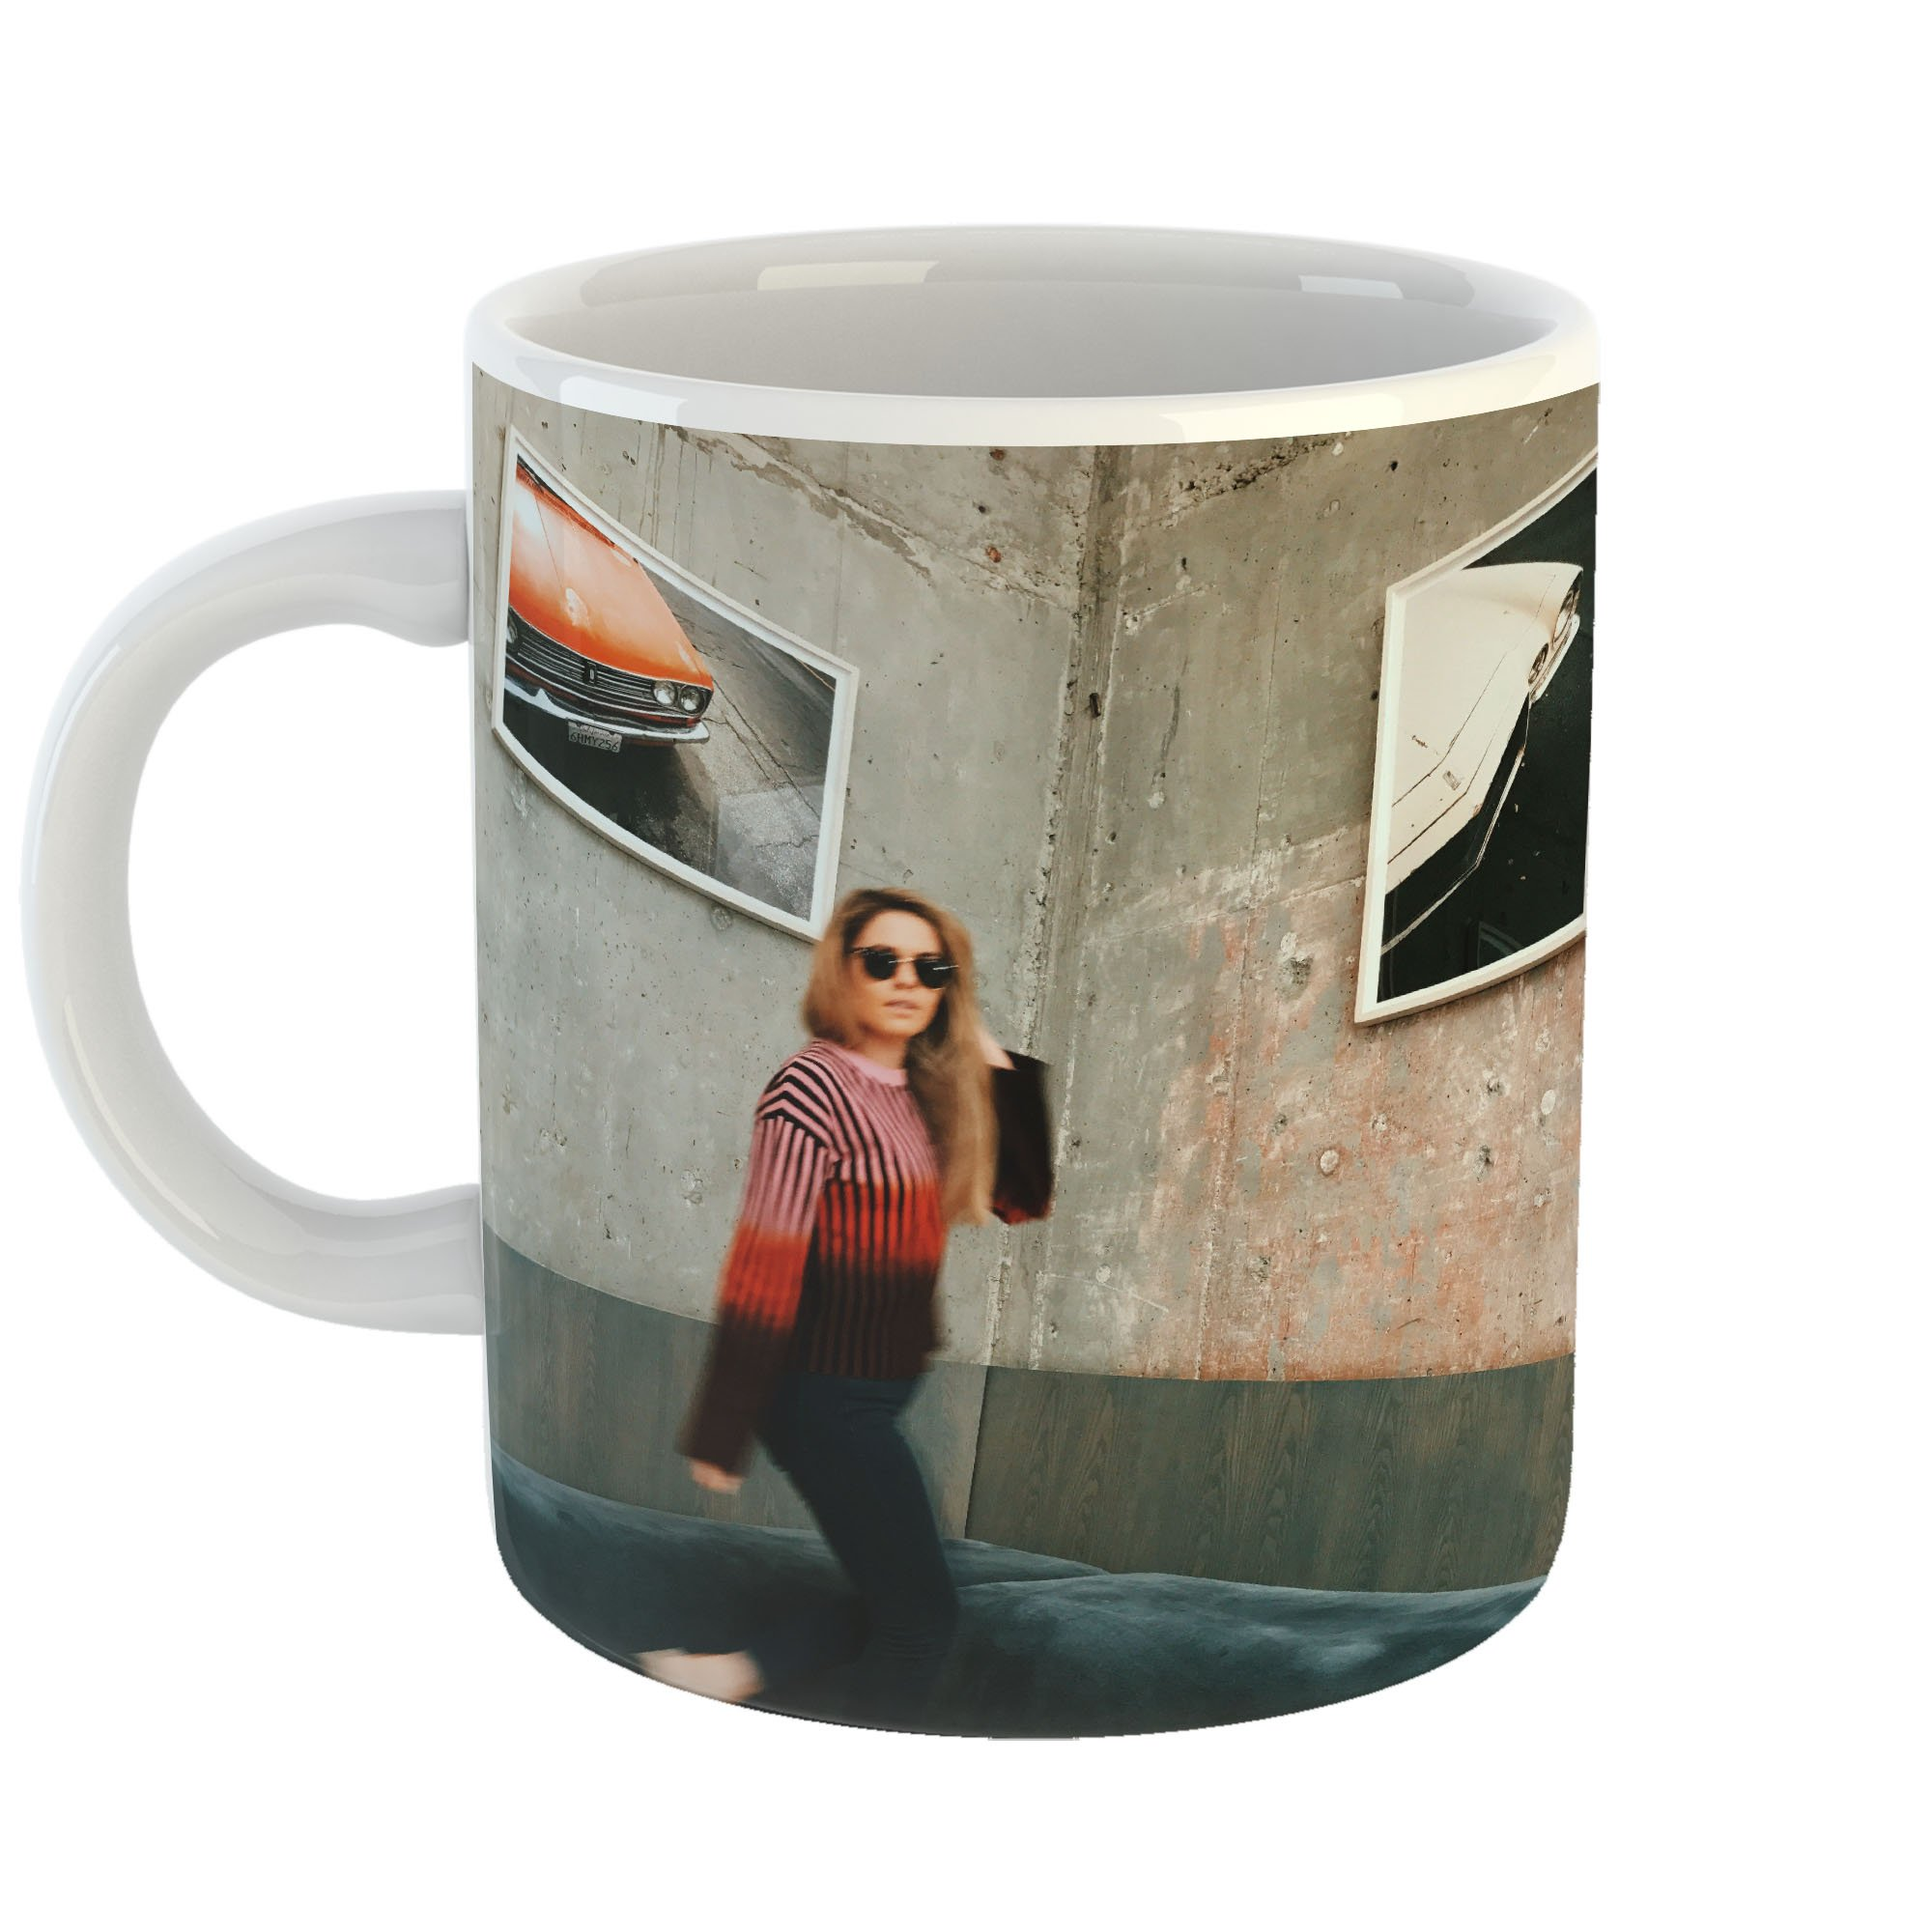 Westlake Art - Stripe Hotel - 11oz Coffee Cup Mug - Modern Picture Photography Artwork Home Office Birthday Gift - 11 Ounce (26C9-1AB13)